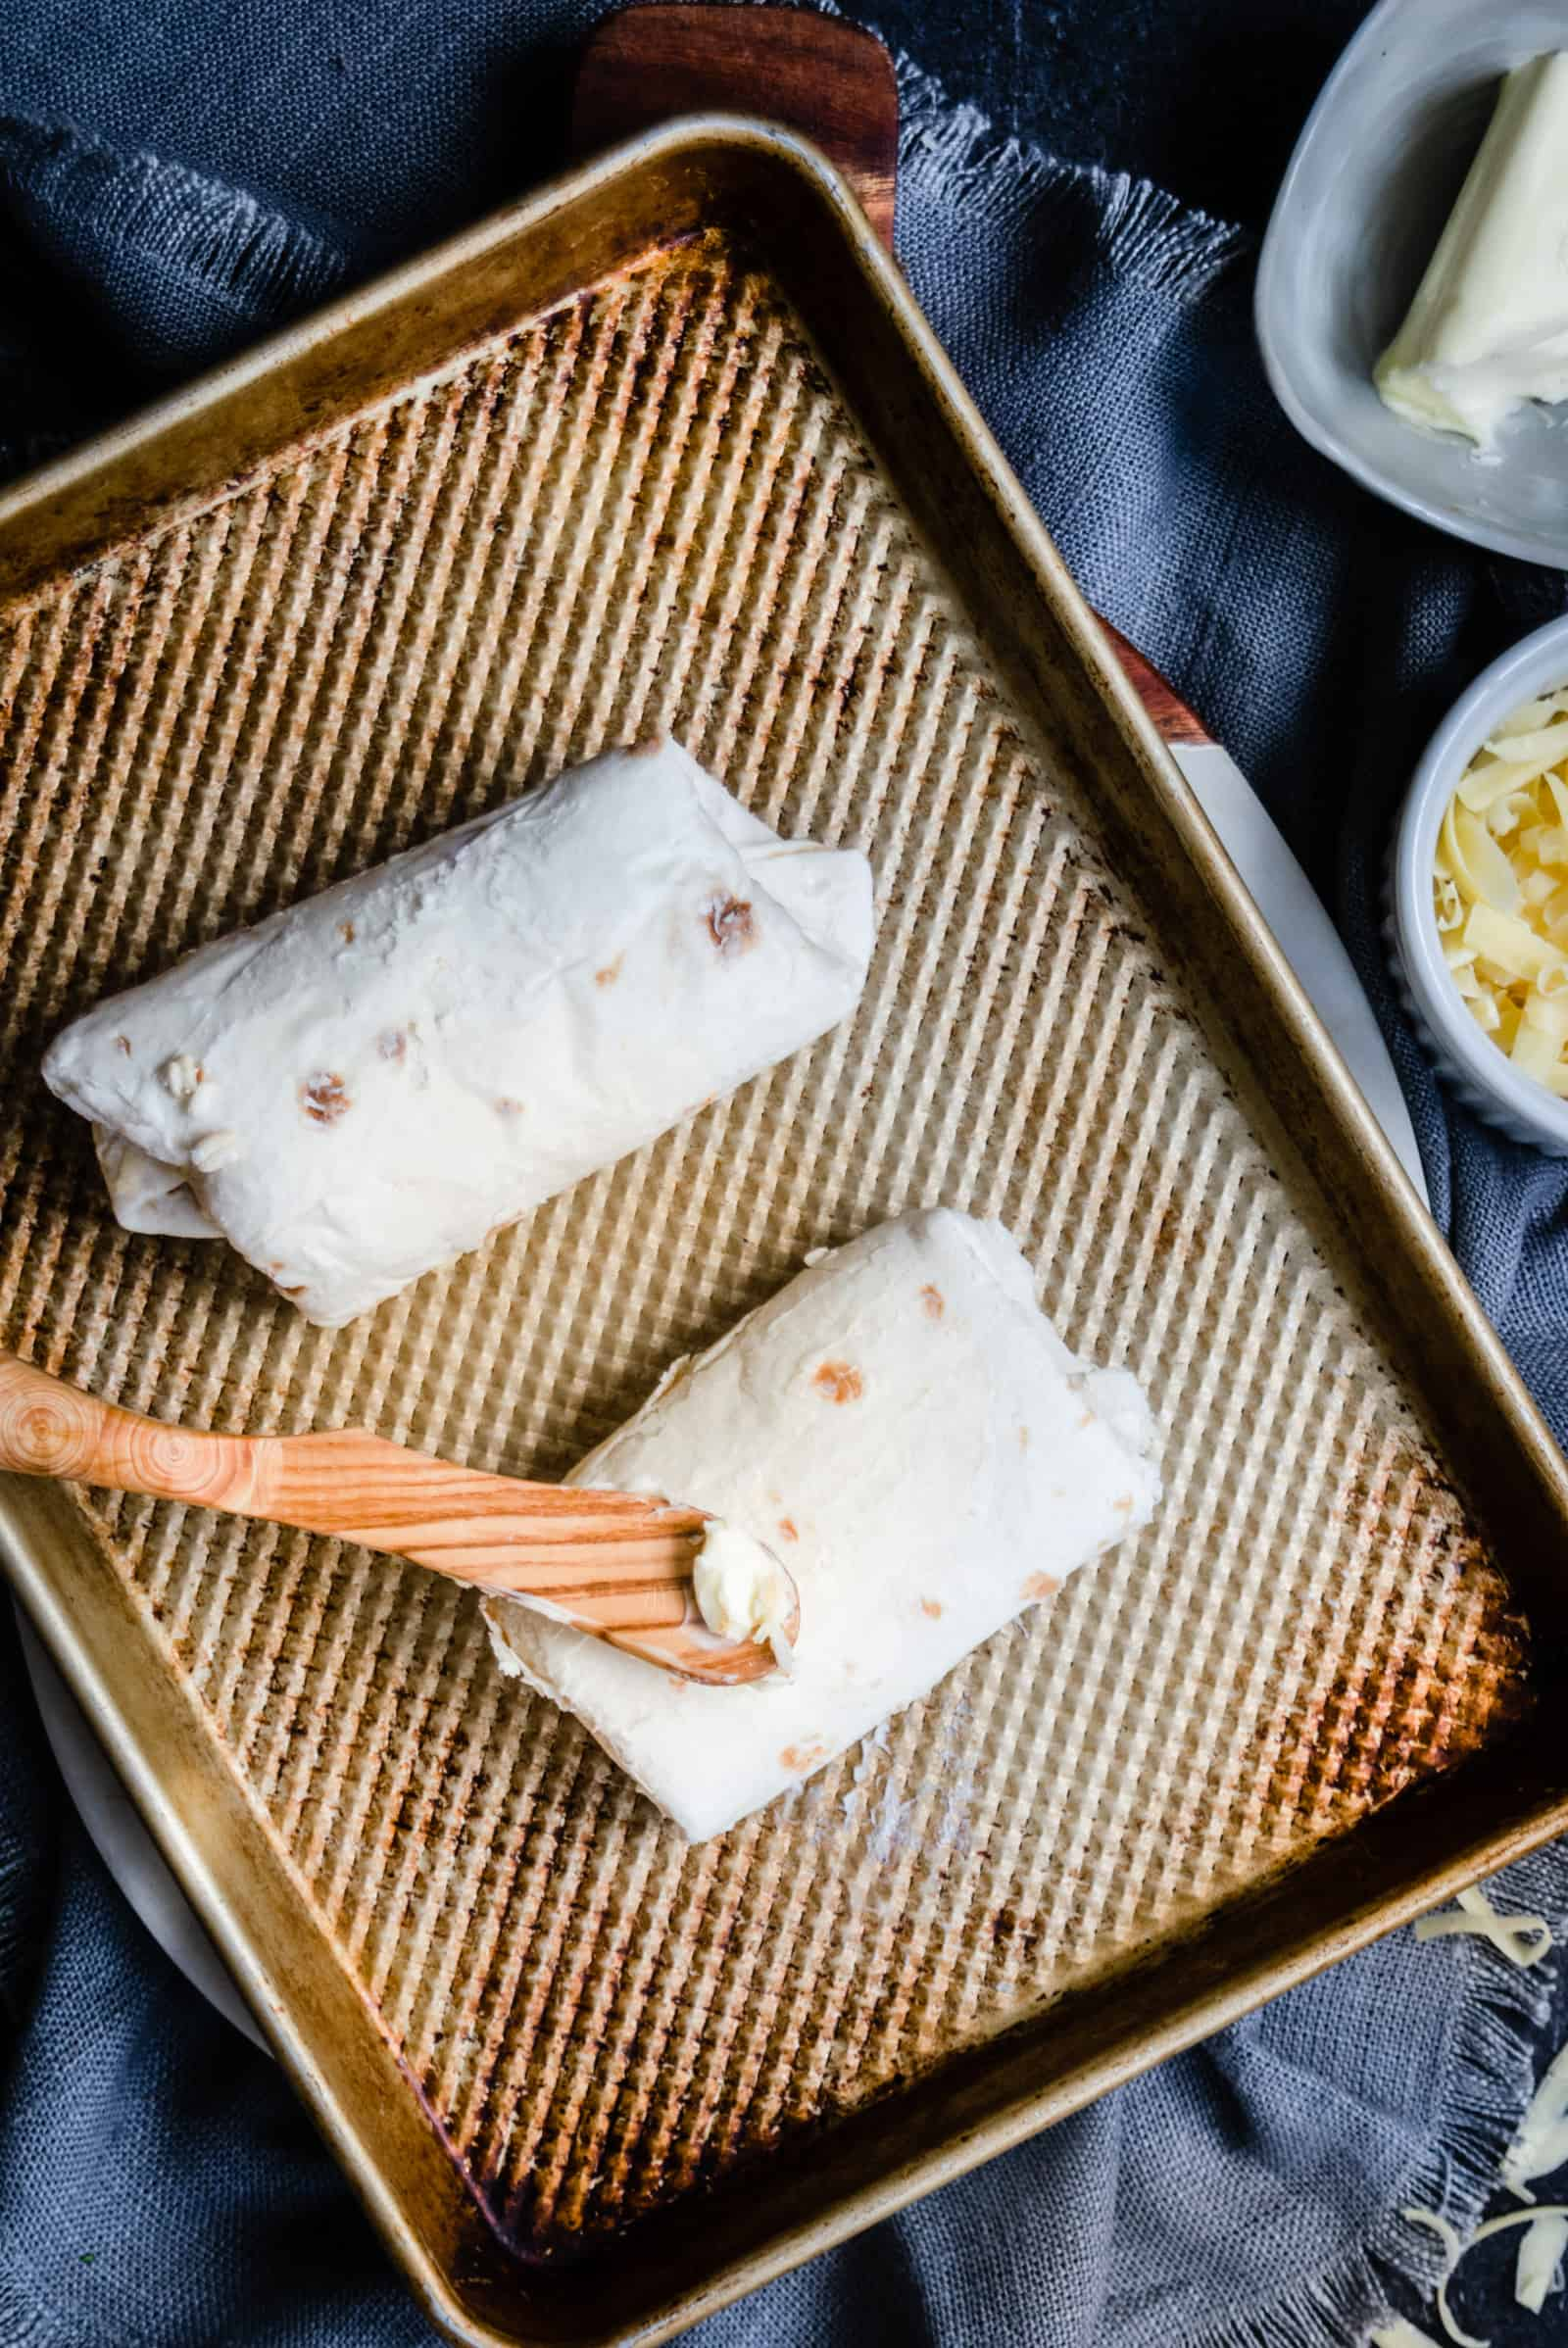 two buttered burritos with a spreader on a baking sheet with a gray blue napkin and bowl of butter nearby